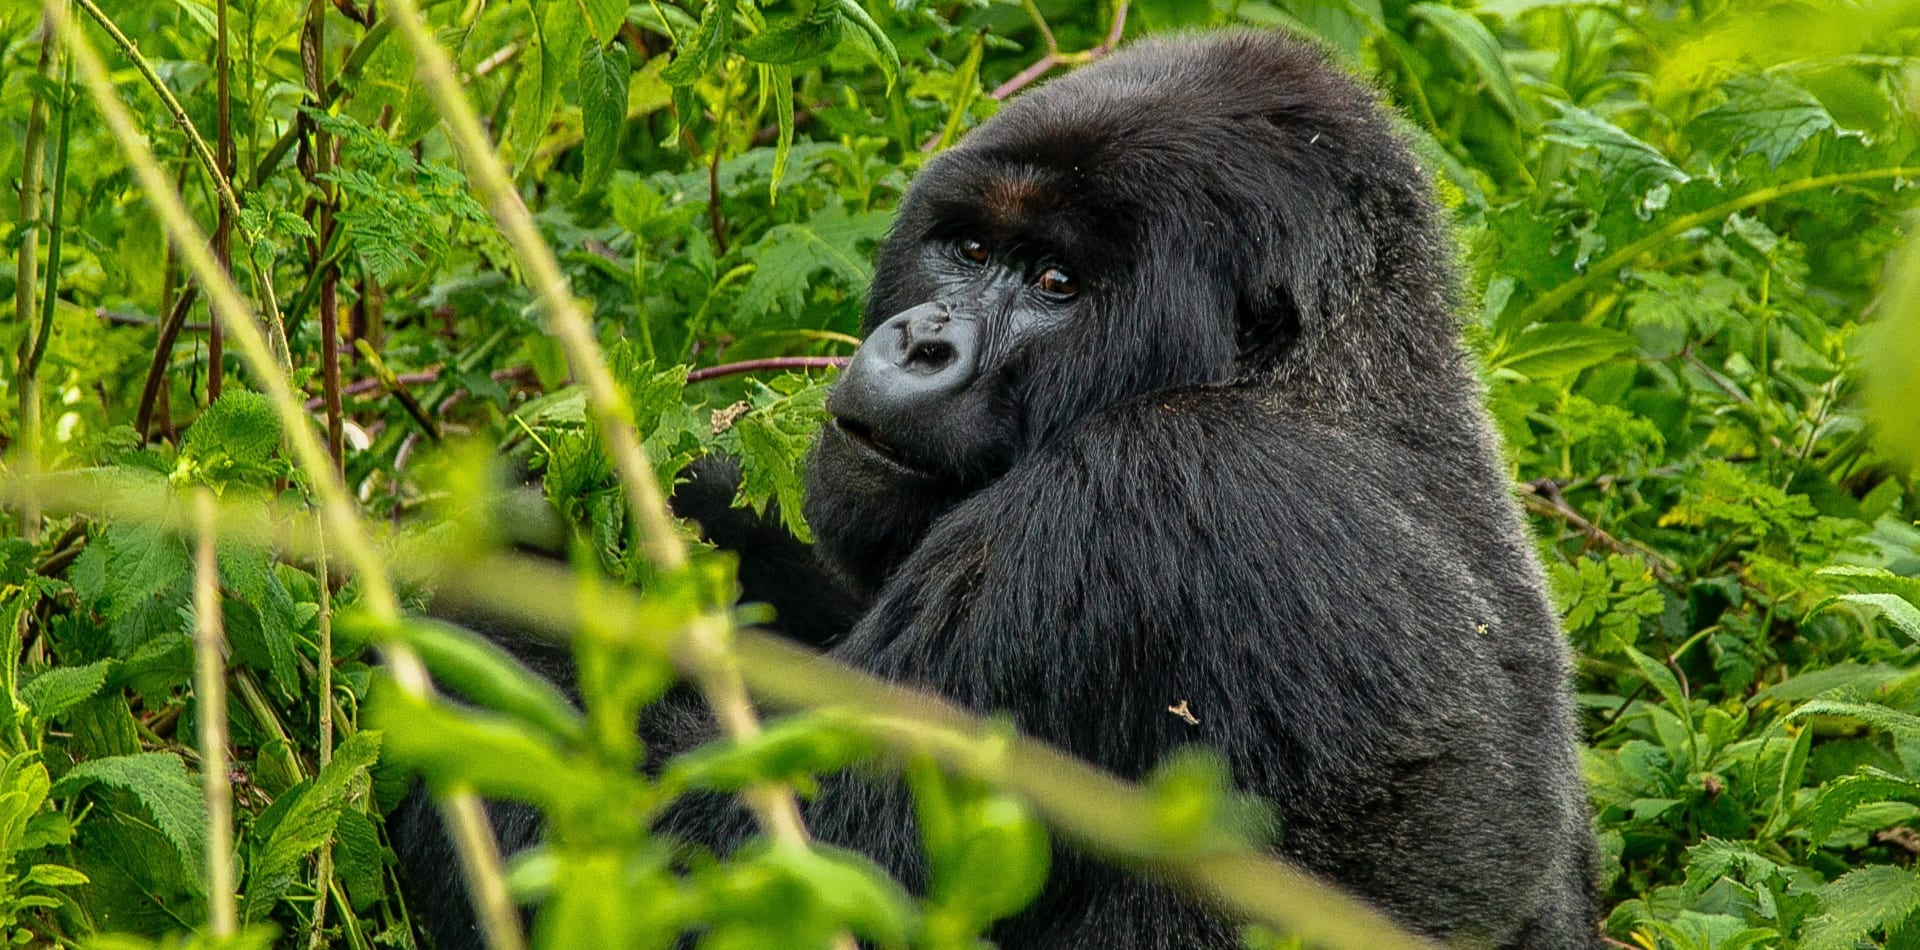 Gorilla in the jungles of Rwanda